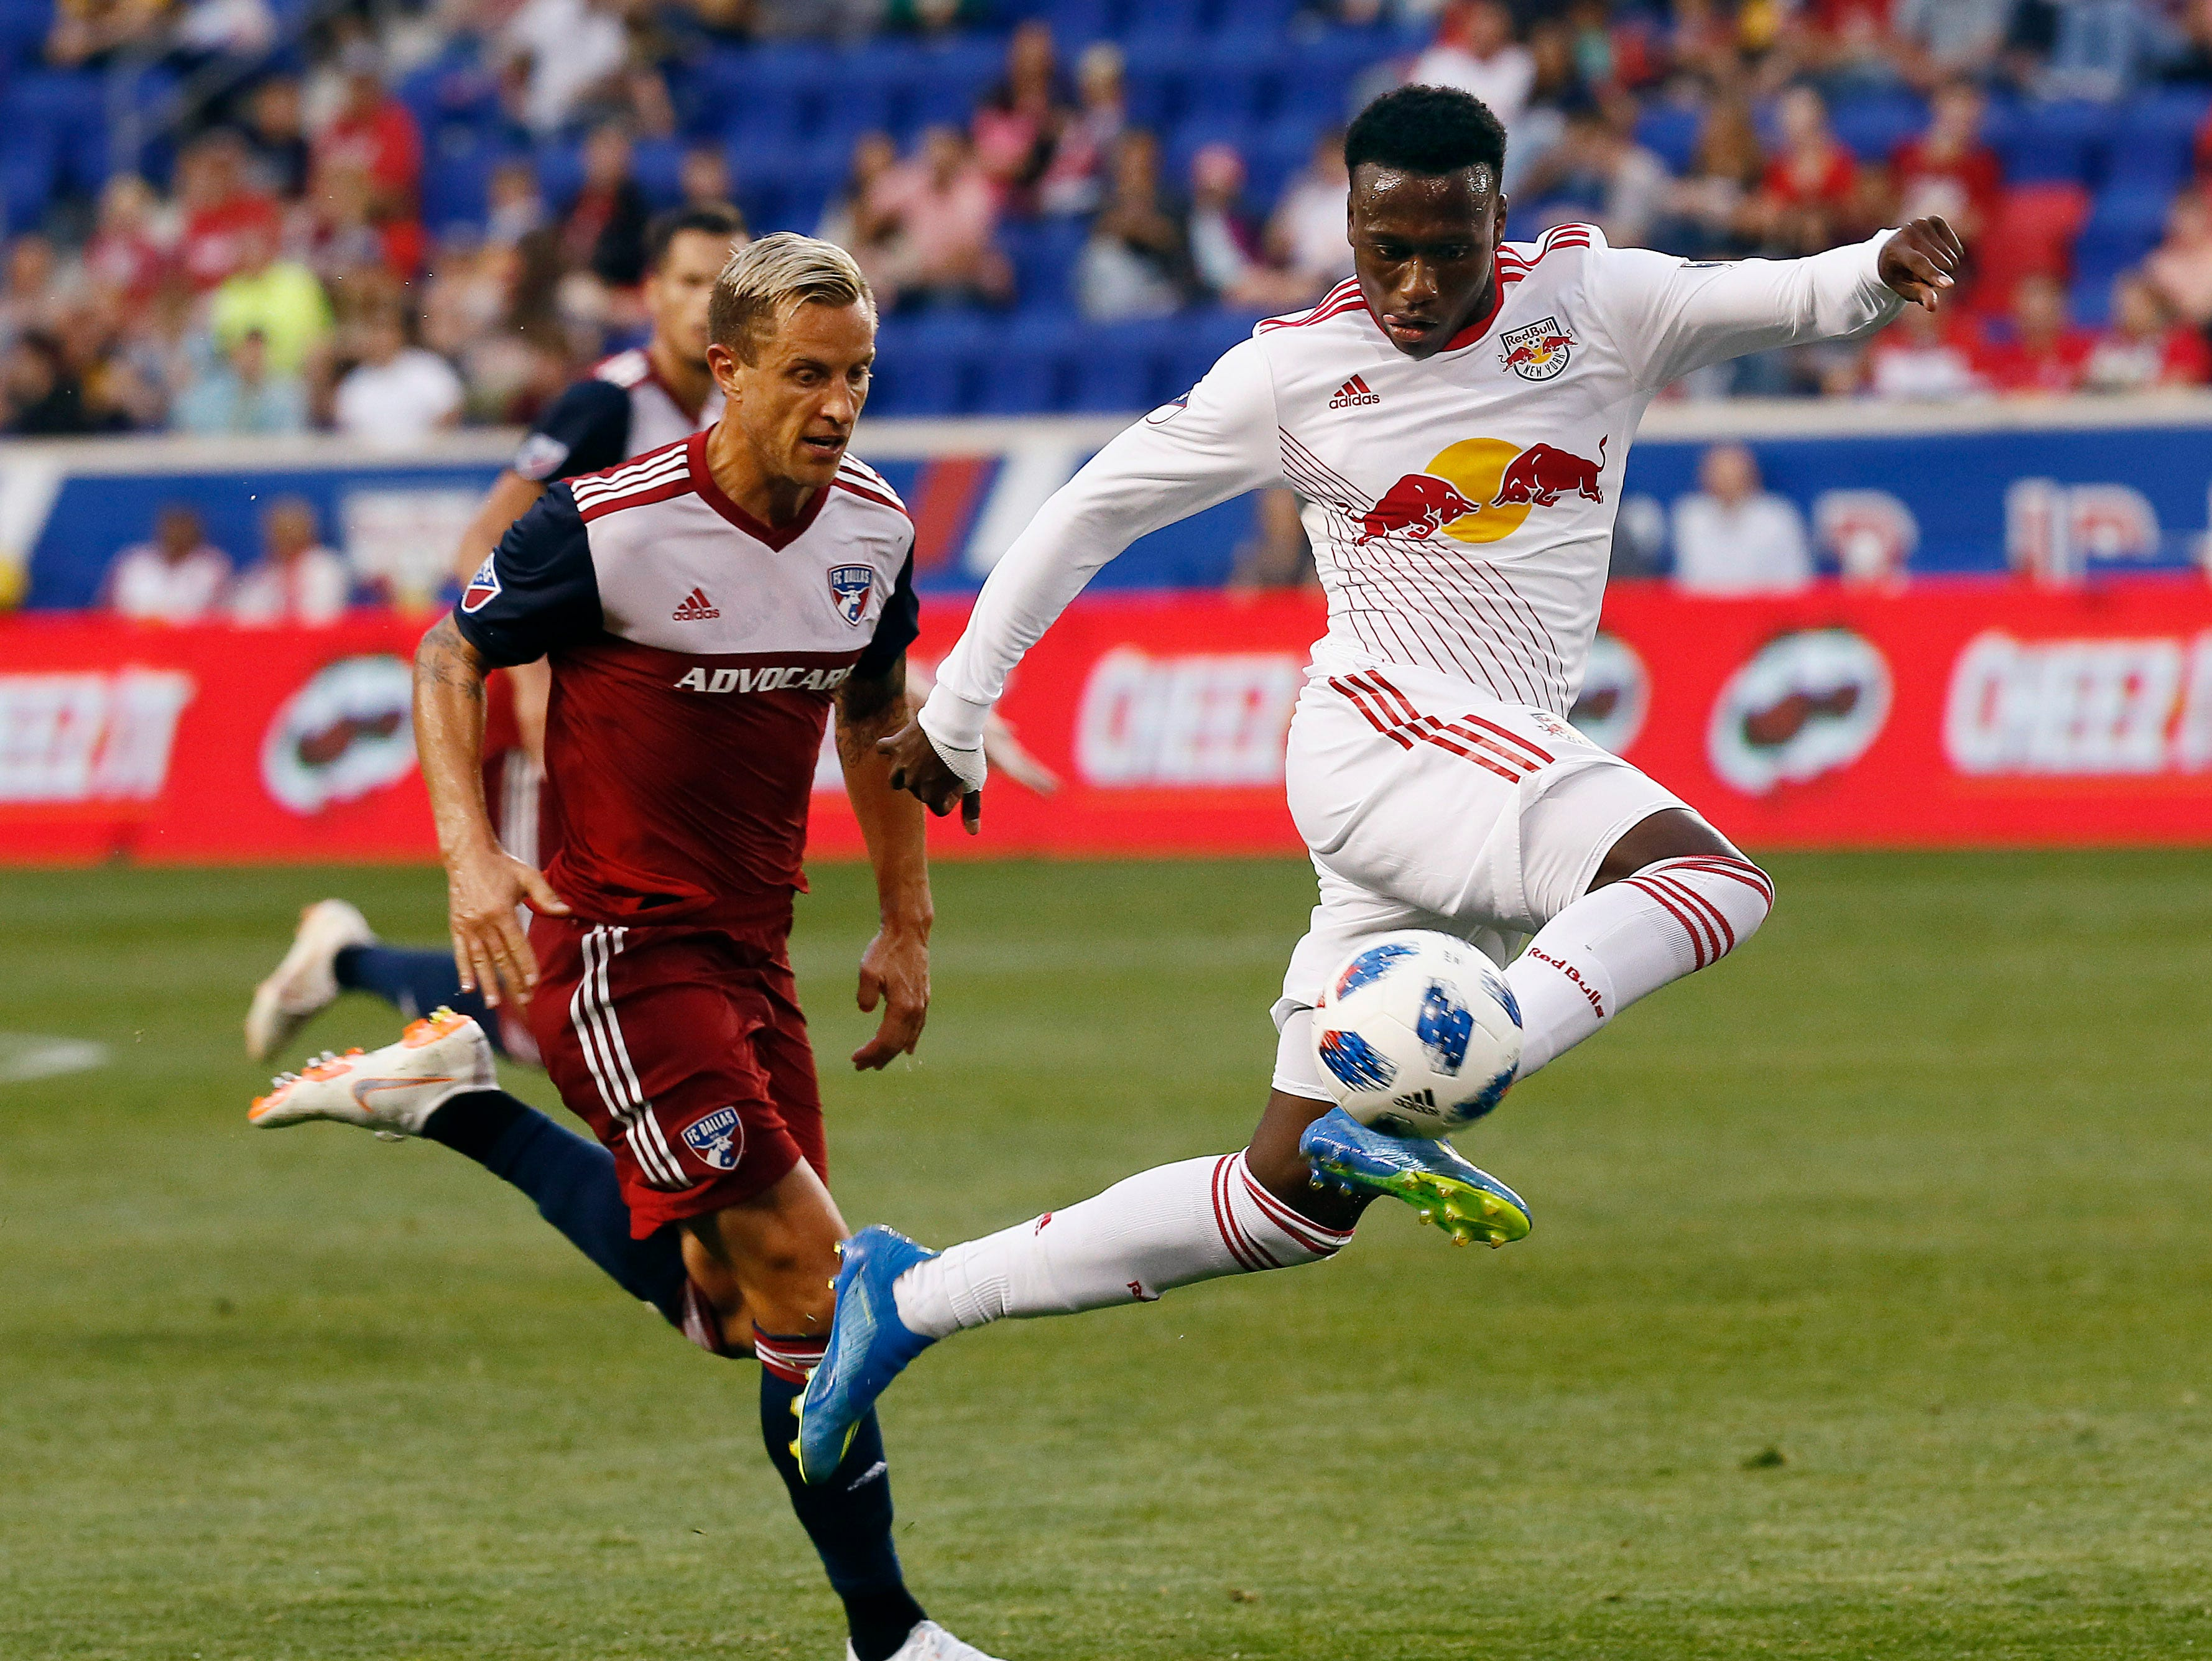 21-year-old Derrick Etienne Jr., Haitian footballer from Paterson, NJ currently playing for the New York Red Bulls and the Haiti national team vs FC Dallas at Red Bull Arena. June 23, 2018. Harrison, NJ